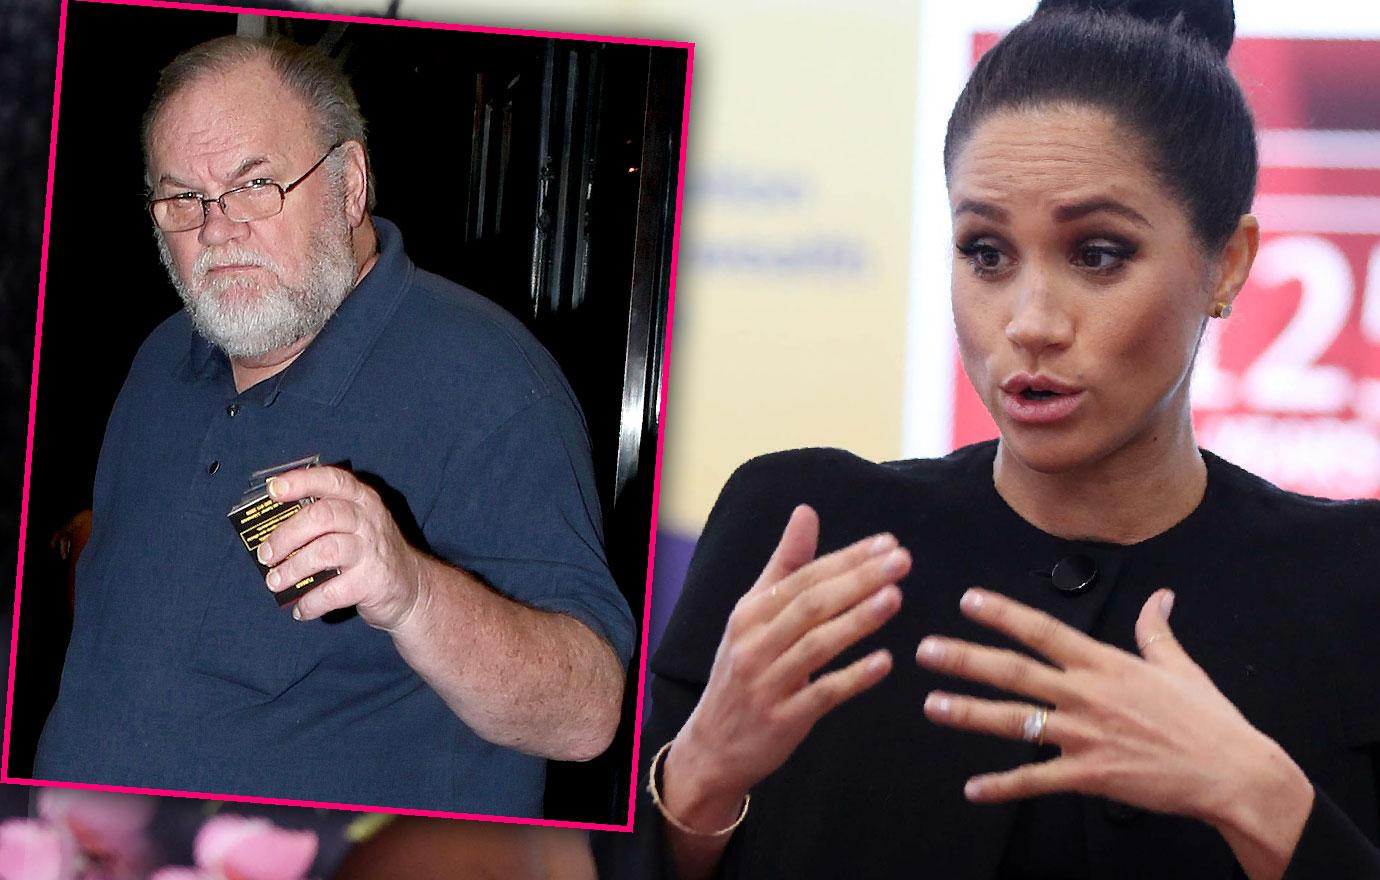 Meghan Markle Begs Dad To Stop Attacking Harry In Letter